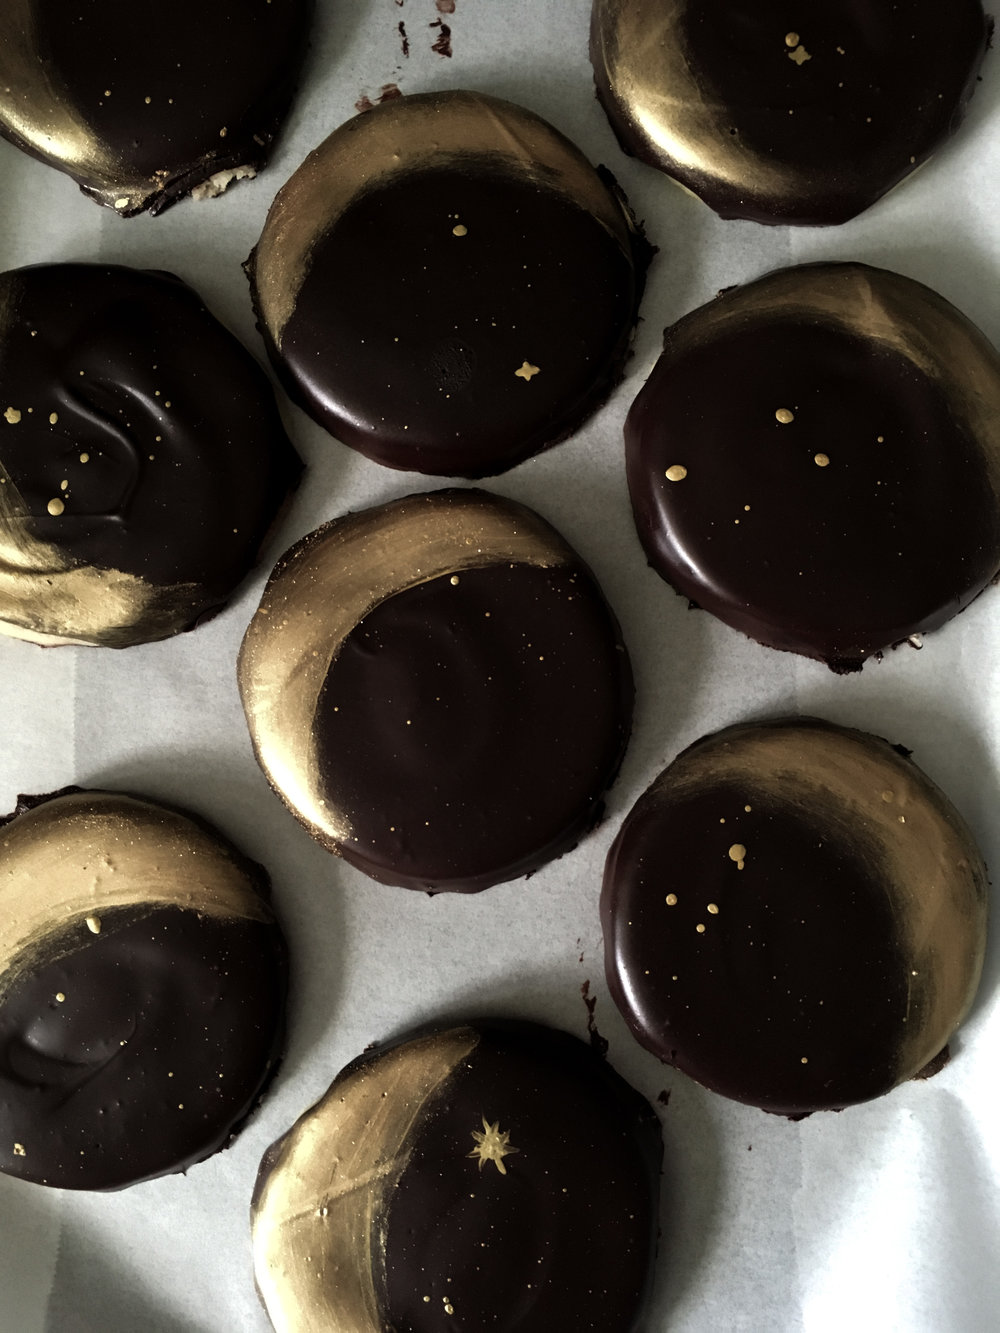 gold moons on dark chocolate